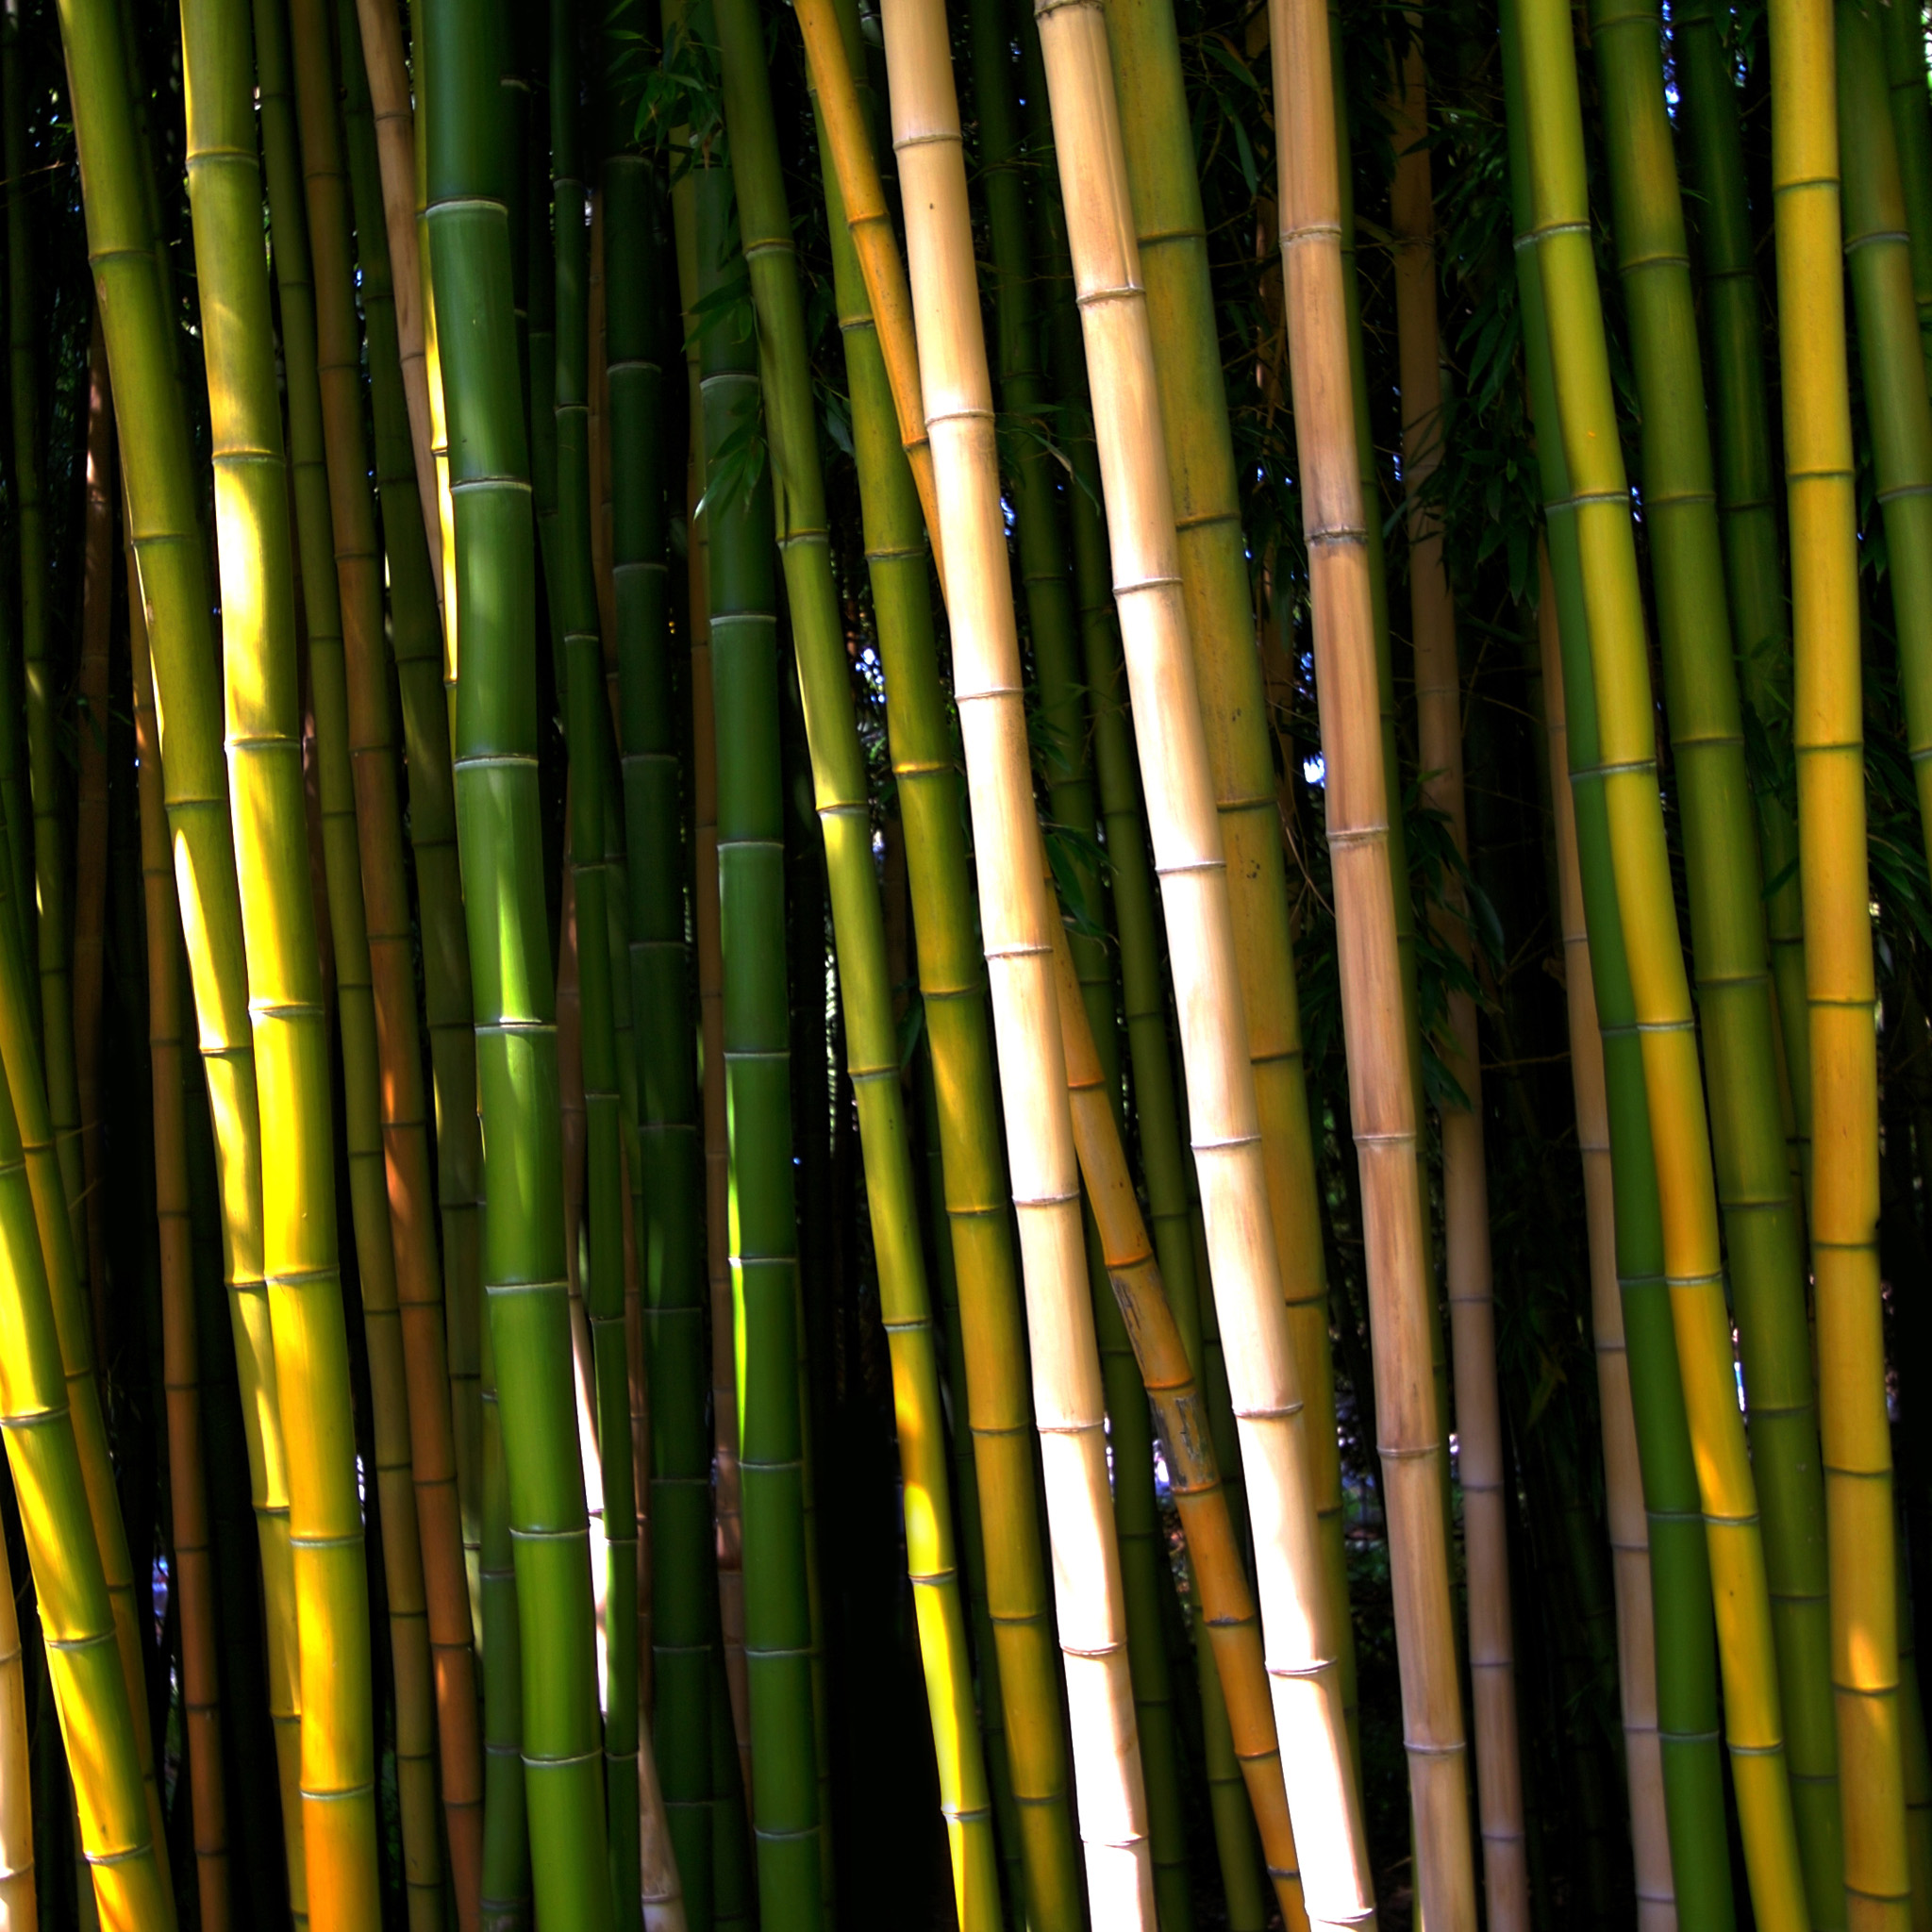 mark sebastian - bamboo ipad wallpaper